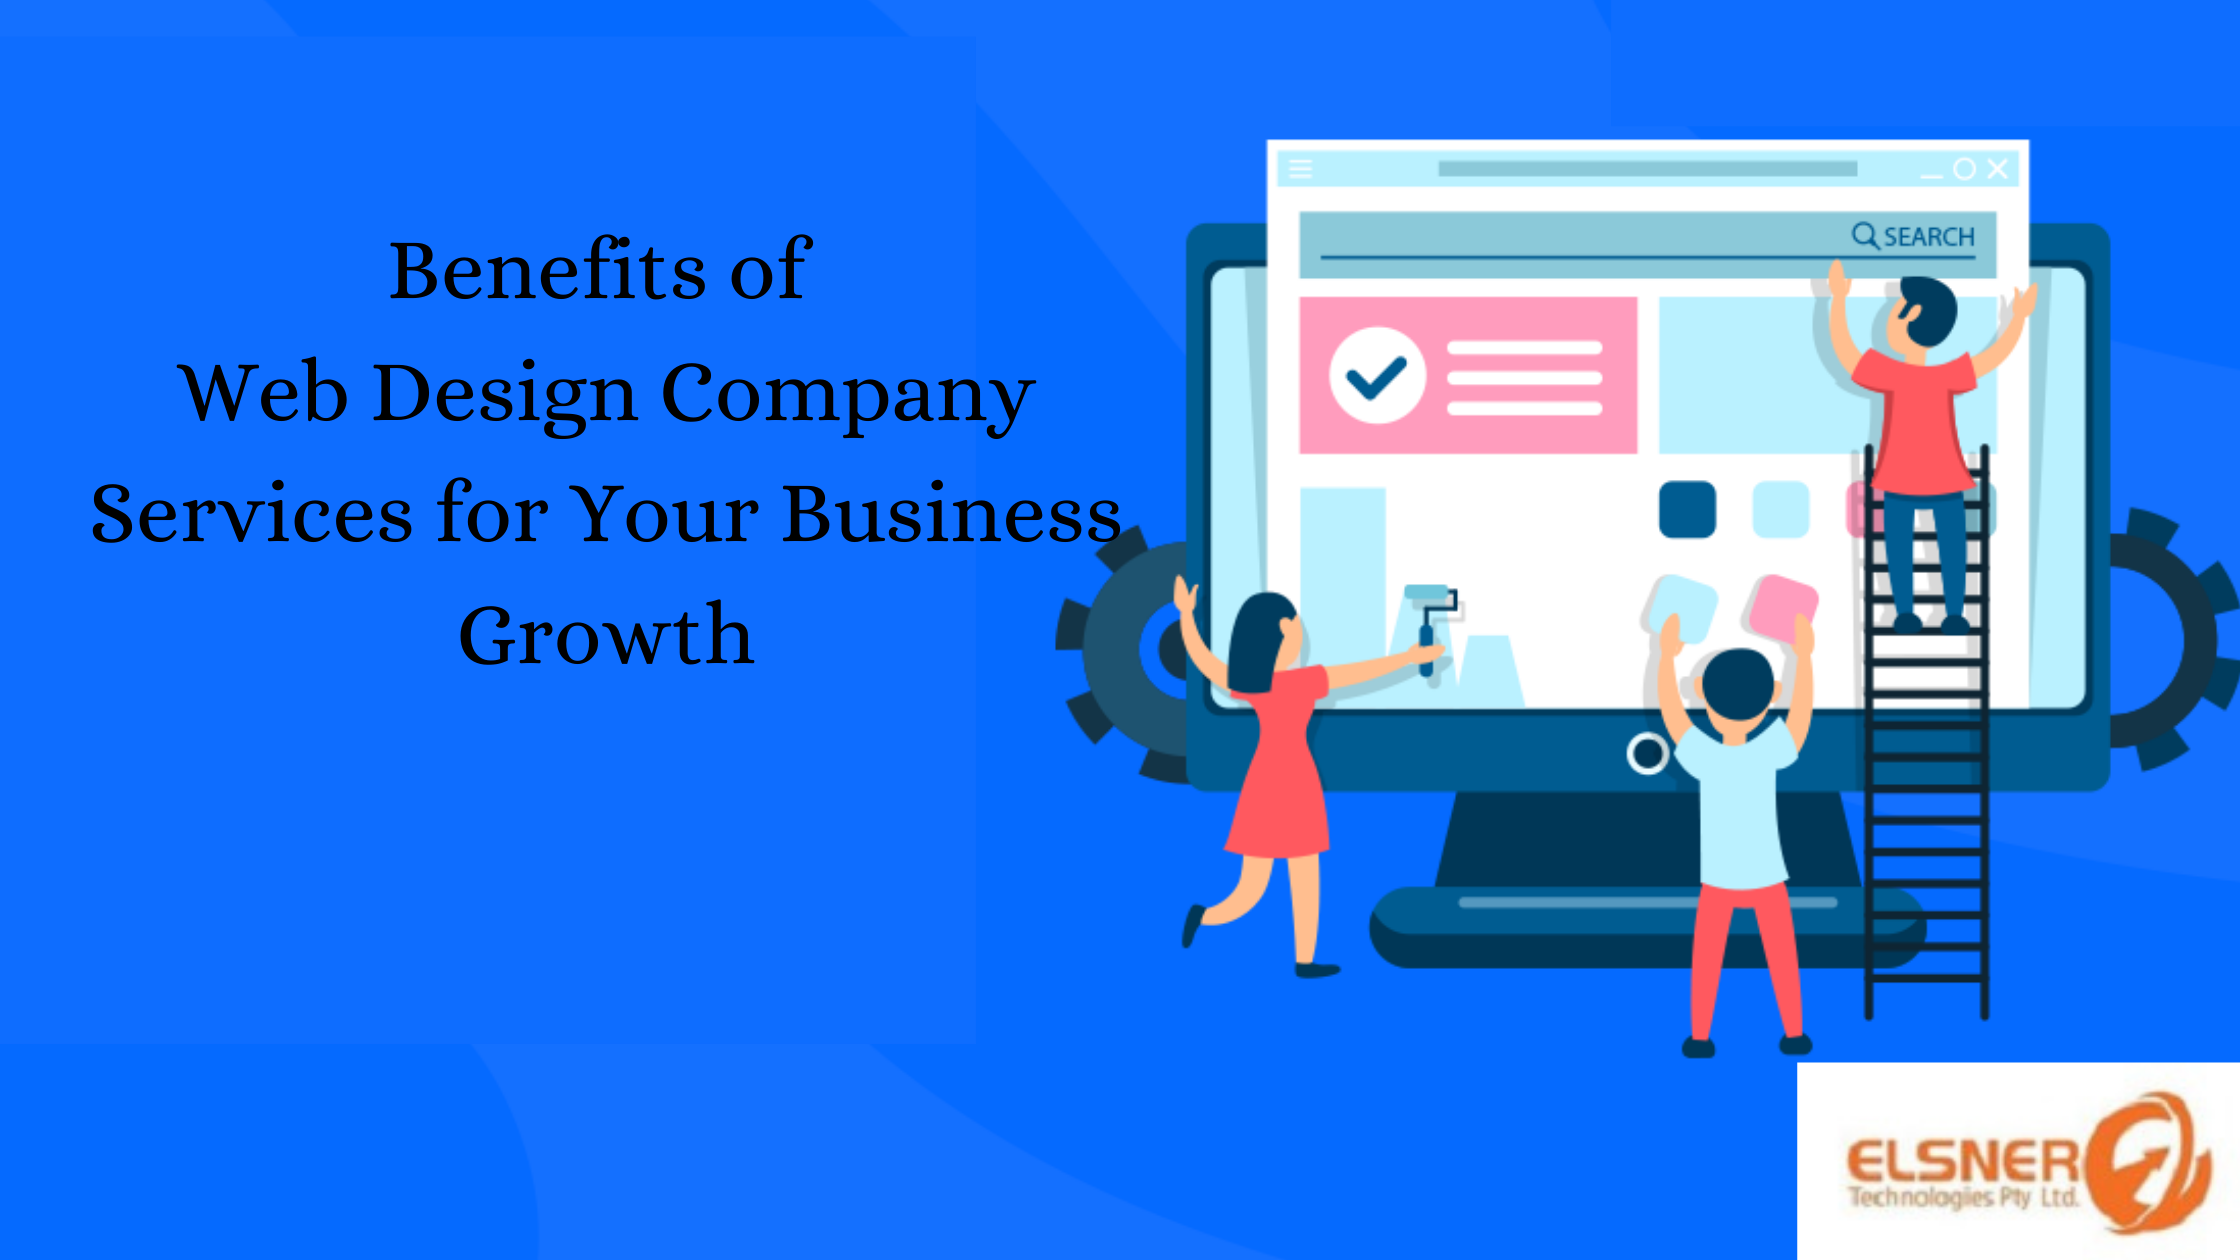 Ten benefits of Web Design Company Services for Your Business Growth